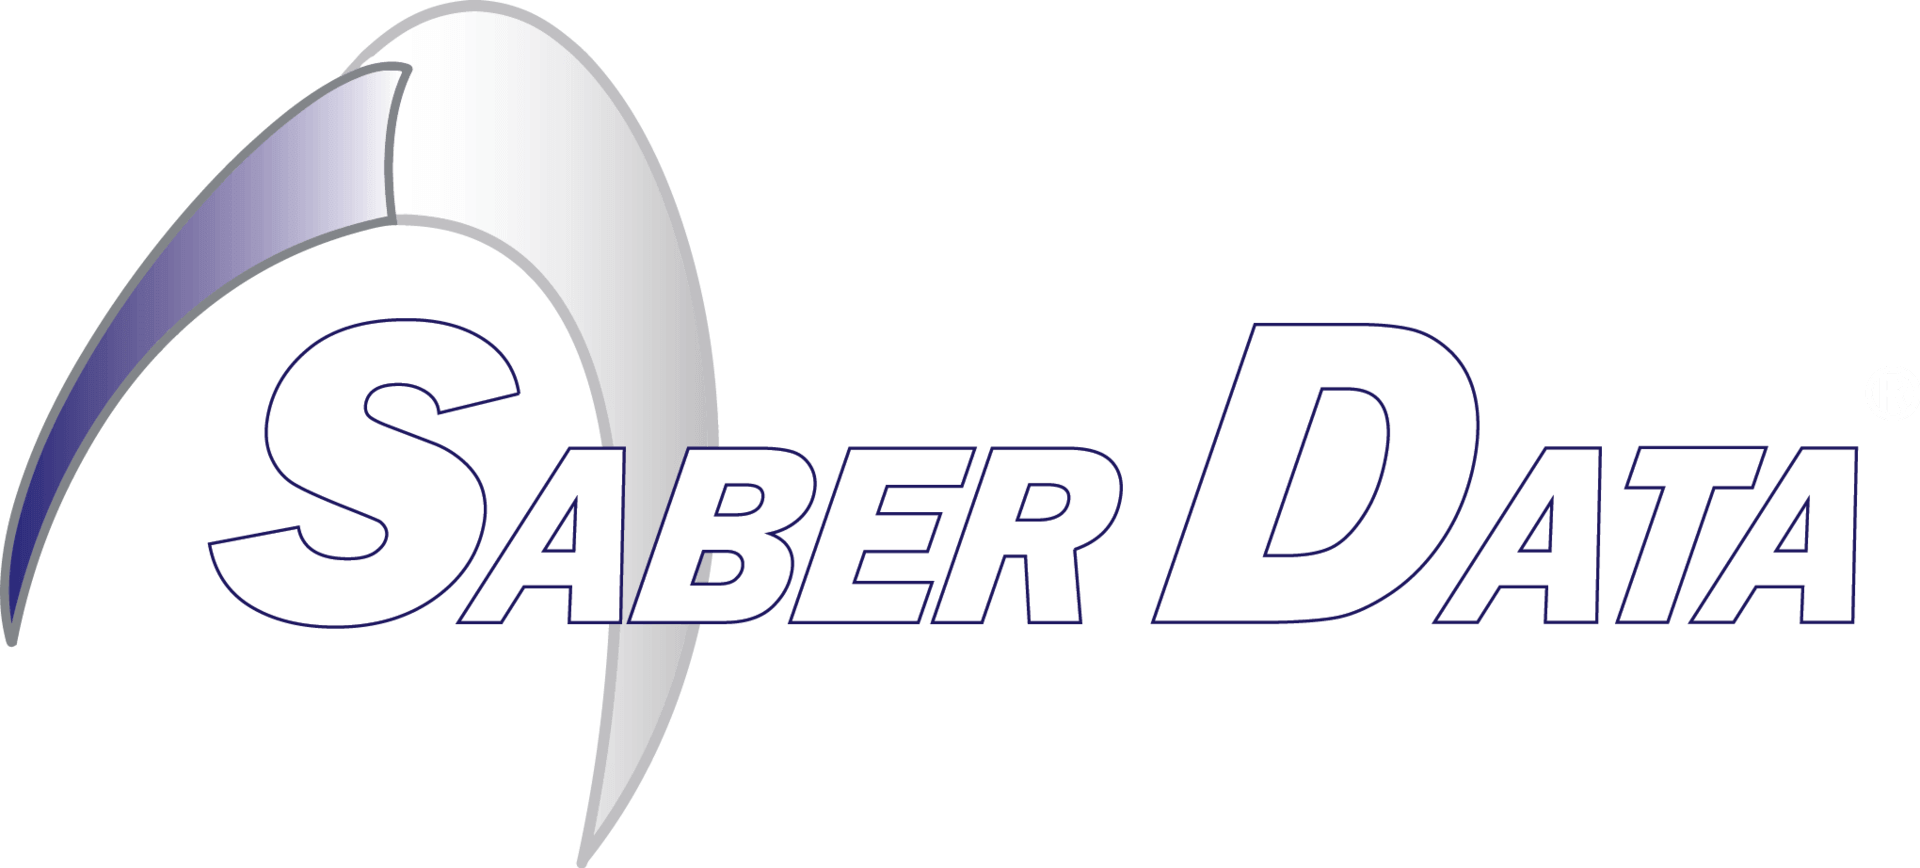 TyRex Logo: Saber Data - White